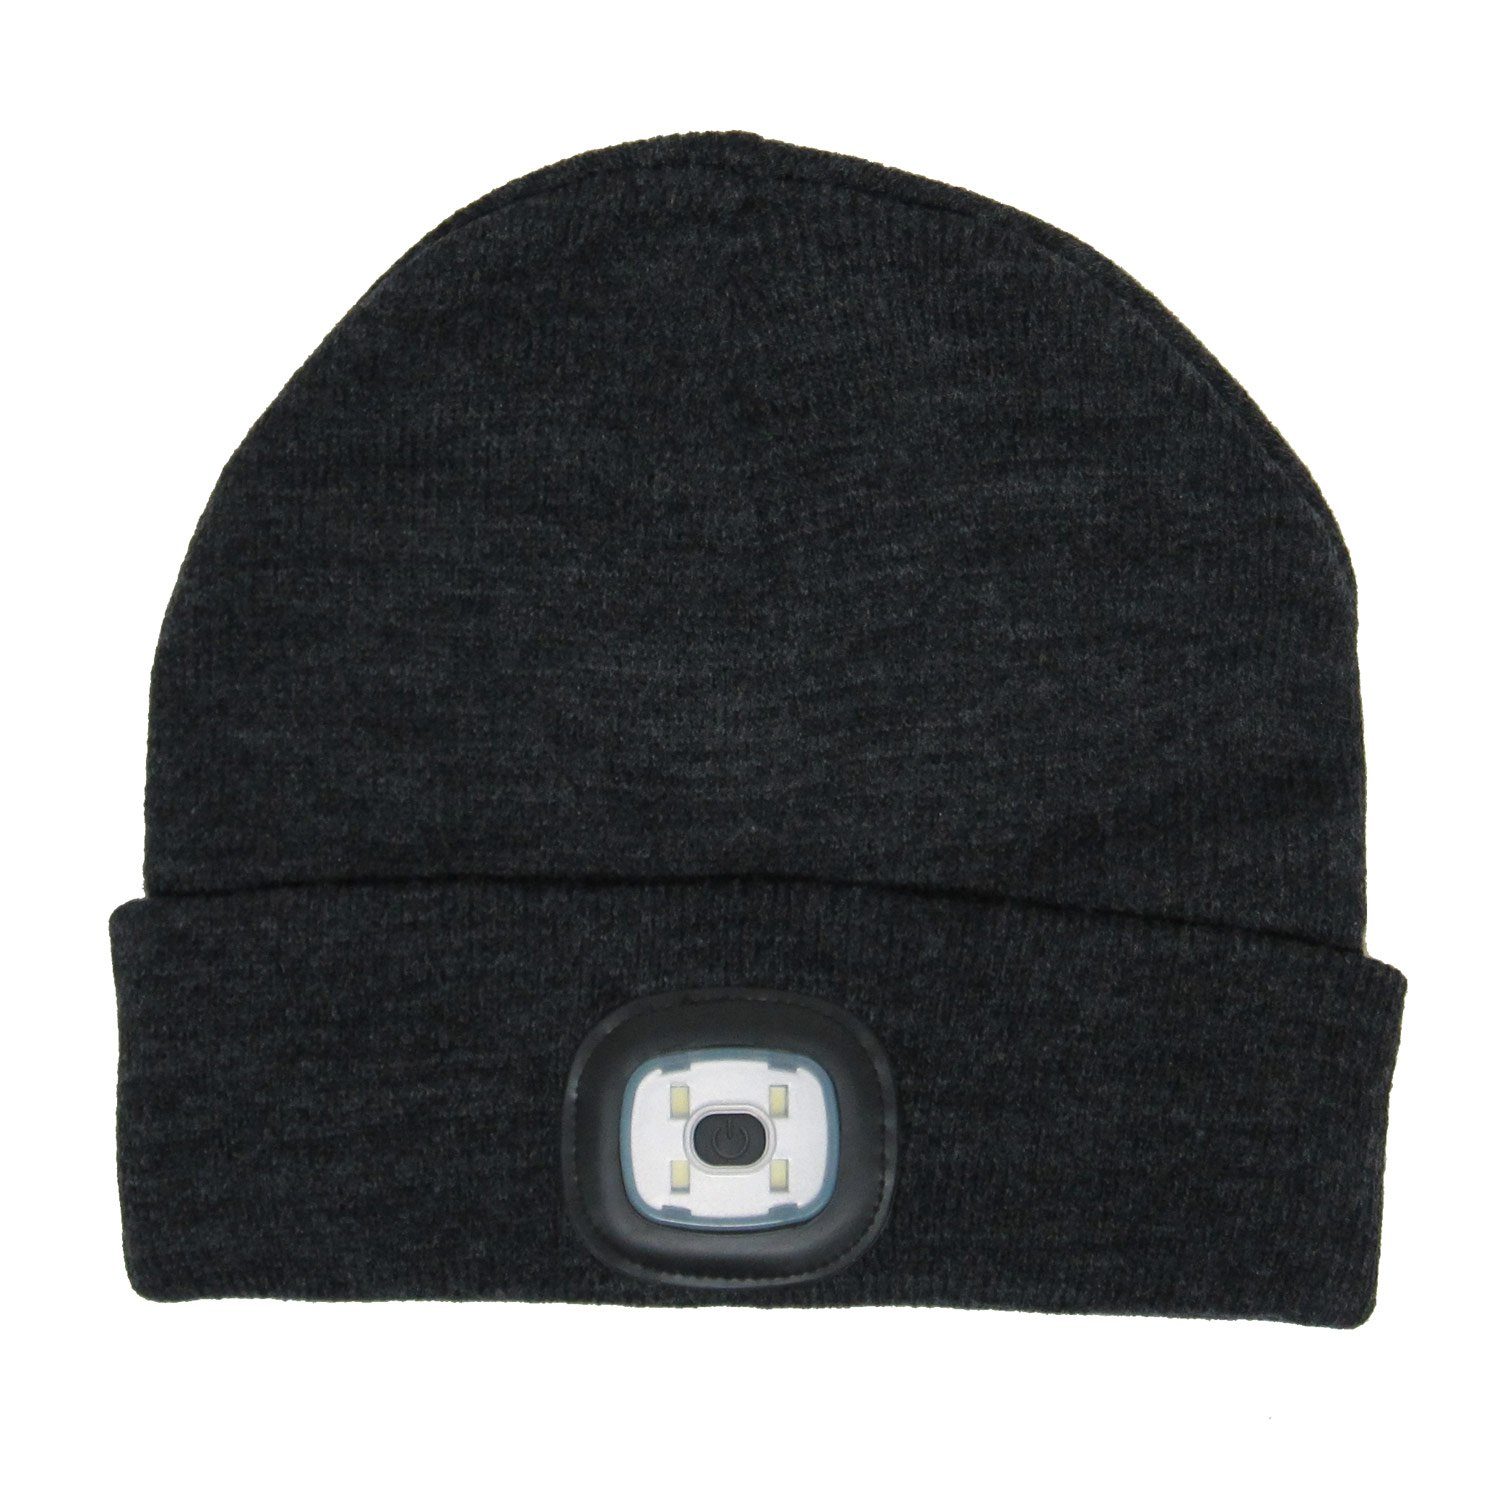 c88c6f9ac4b Amazon.com   BEAMie Hat With Built-In Rechargeable LED Head Lights ...